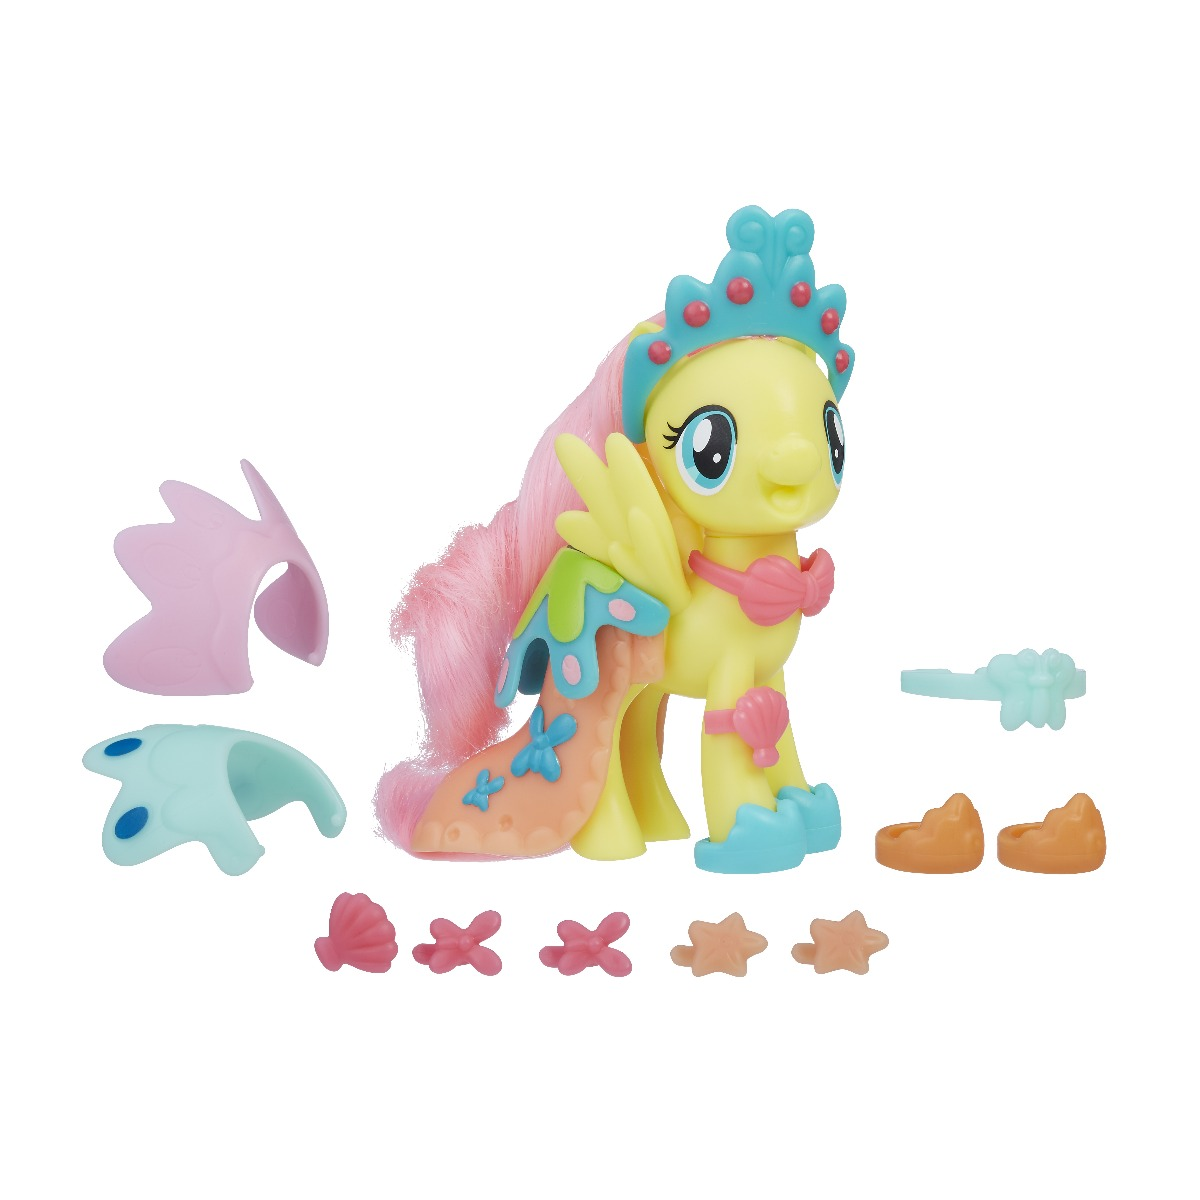 Figurina cu accesorii fashions My Little Pony The Movie - Fluttershy